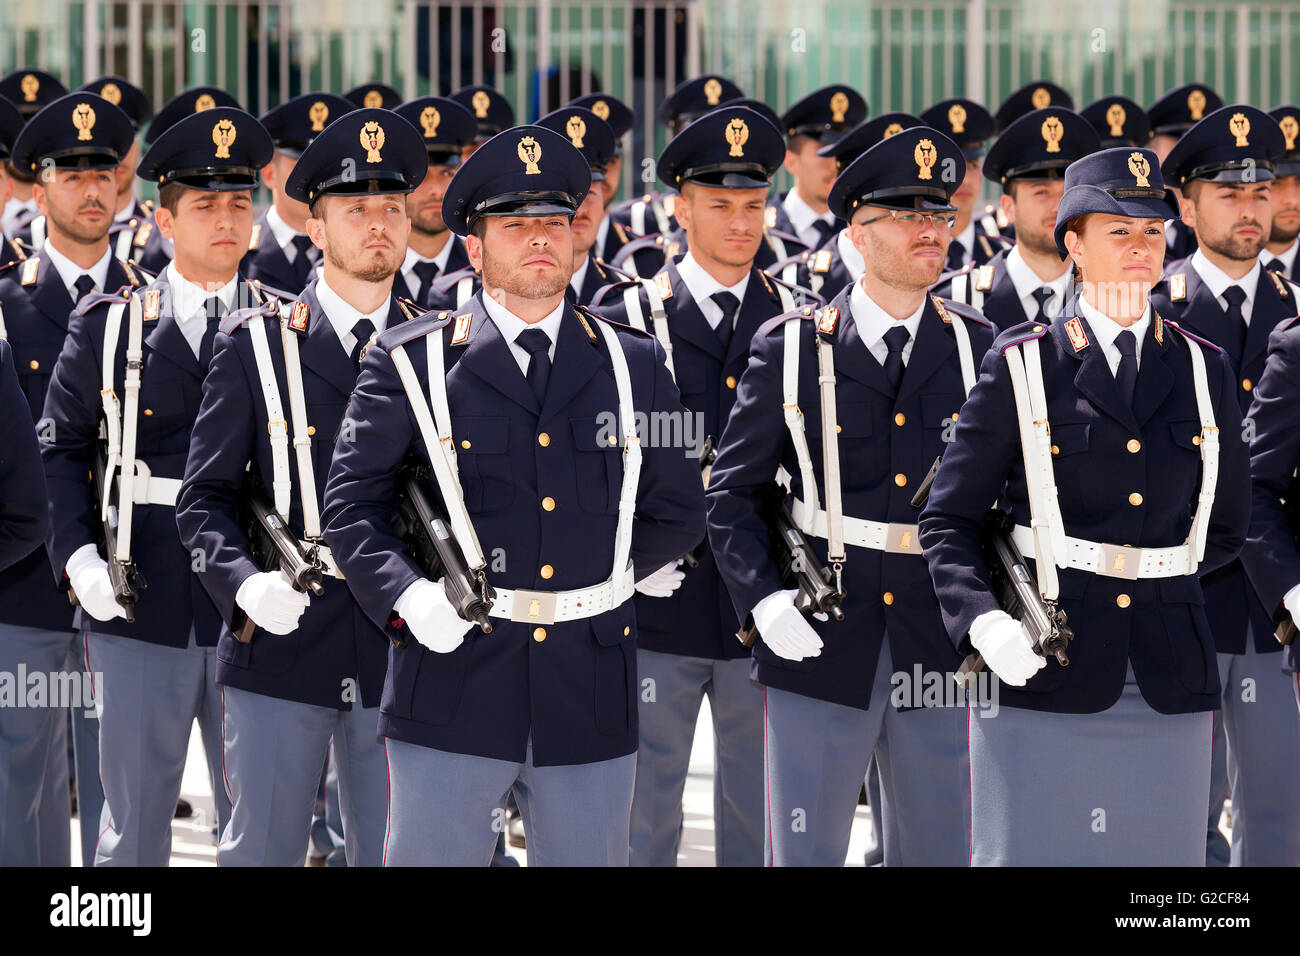 Rome Police Department >> Rome Italy May 25 2016 Deployment Of Italian Police